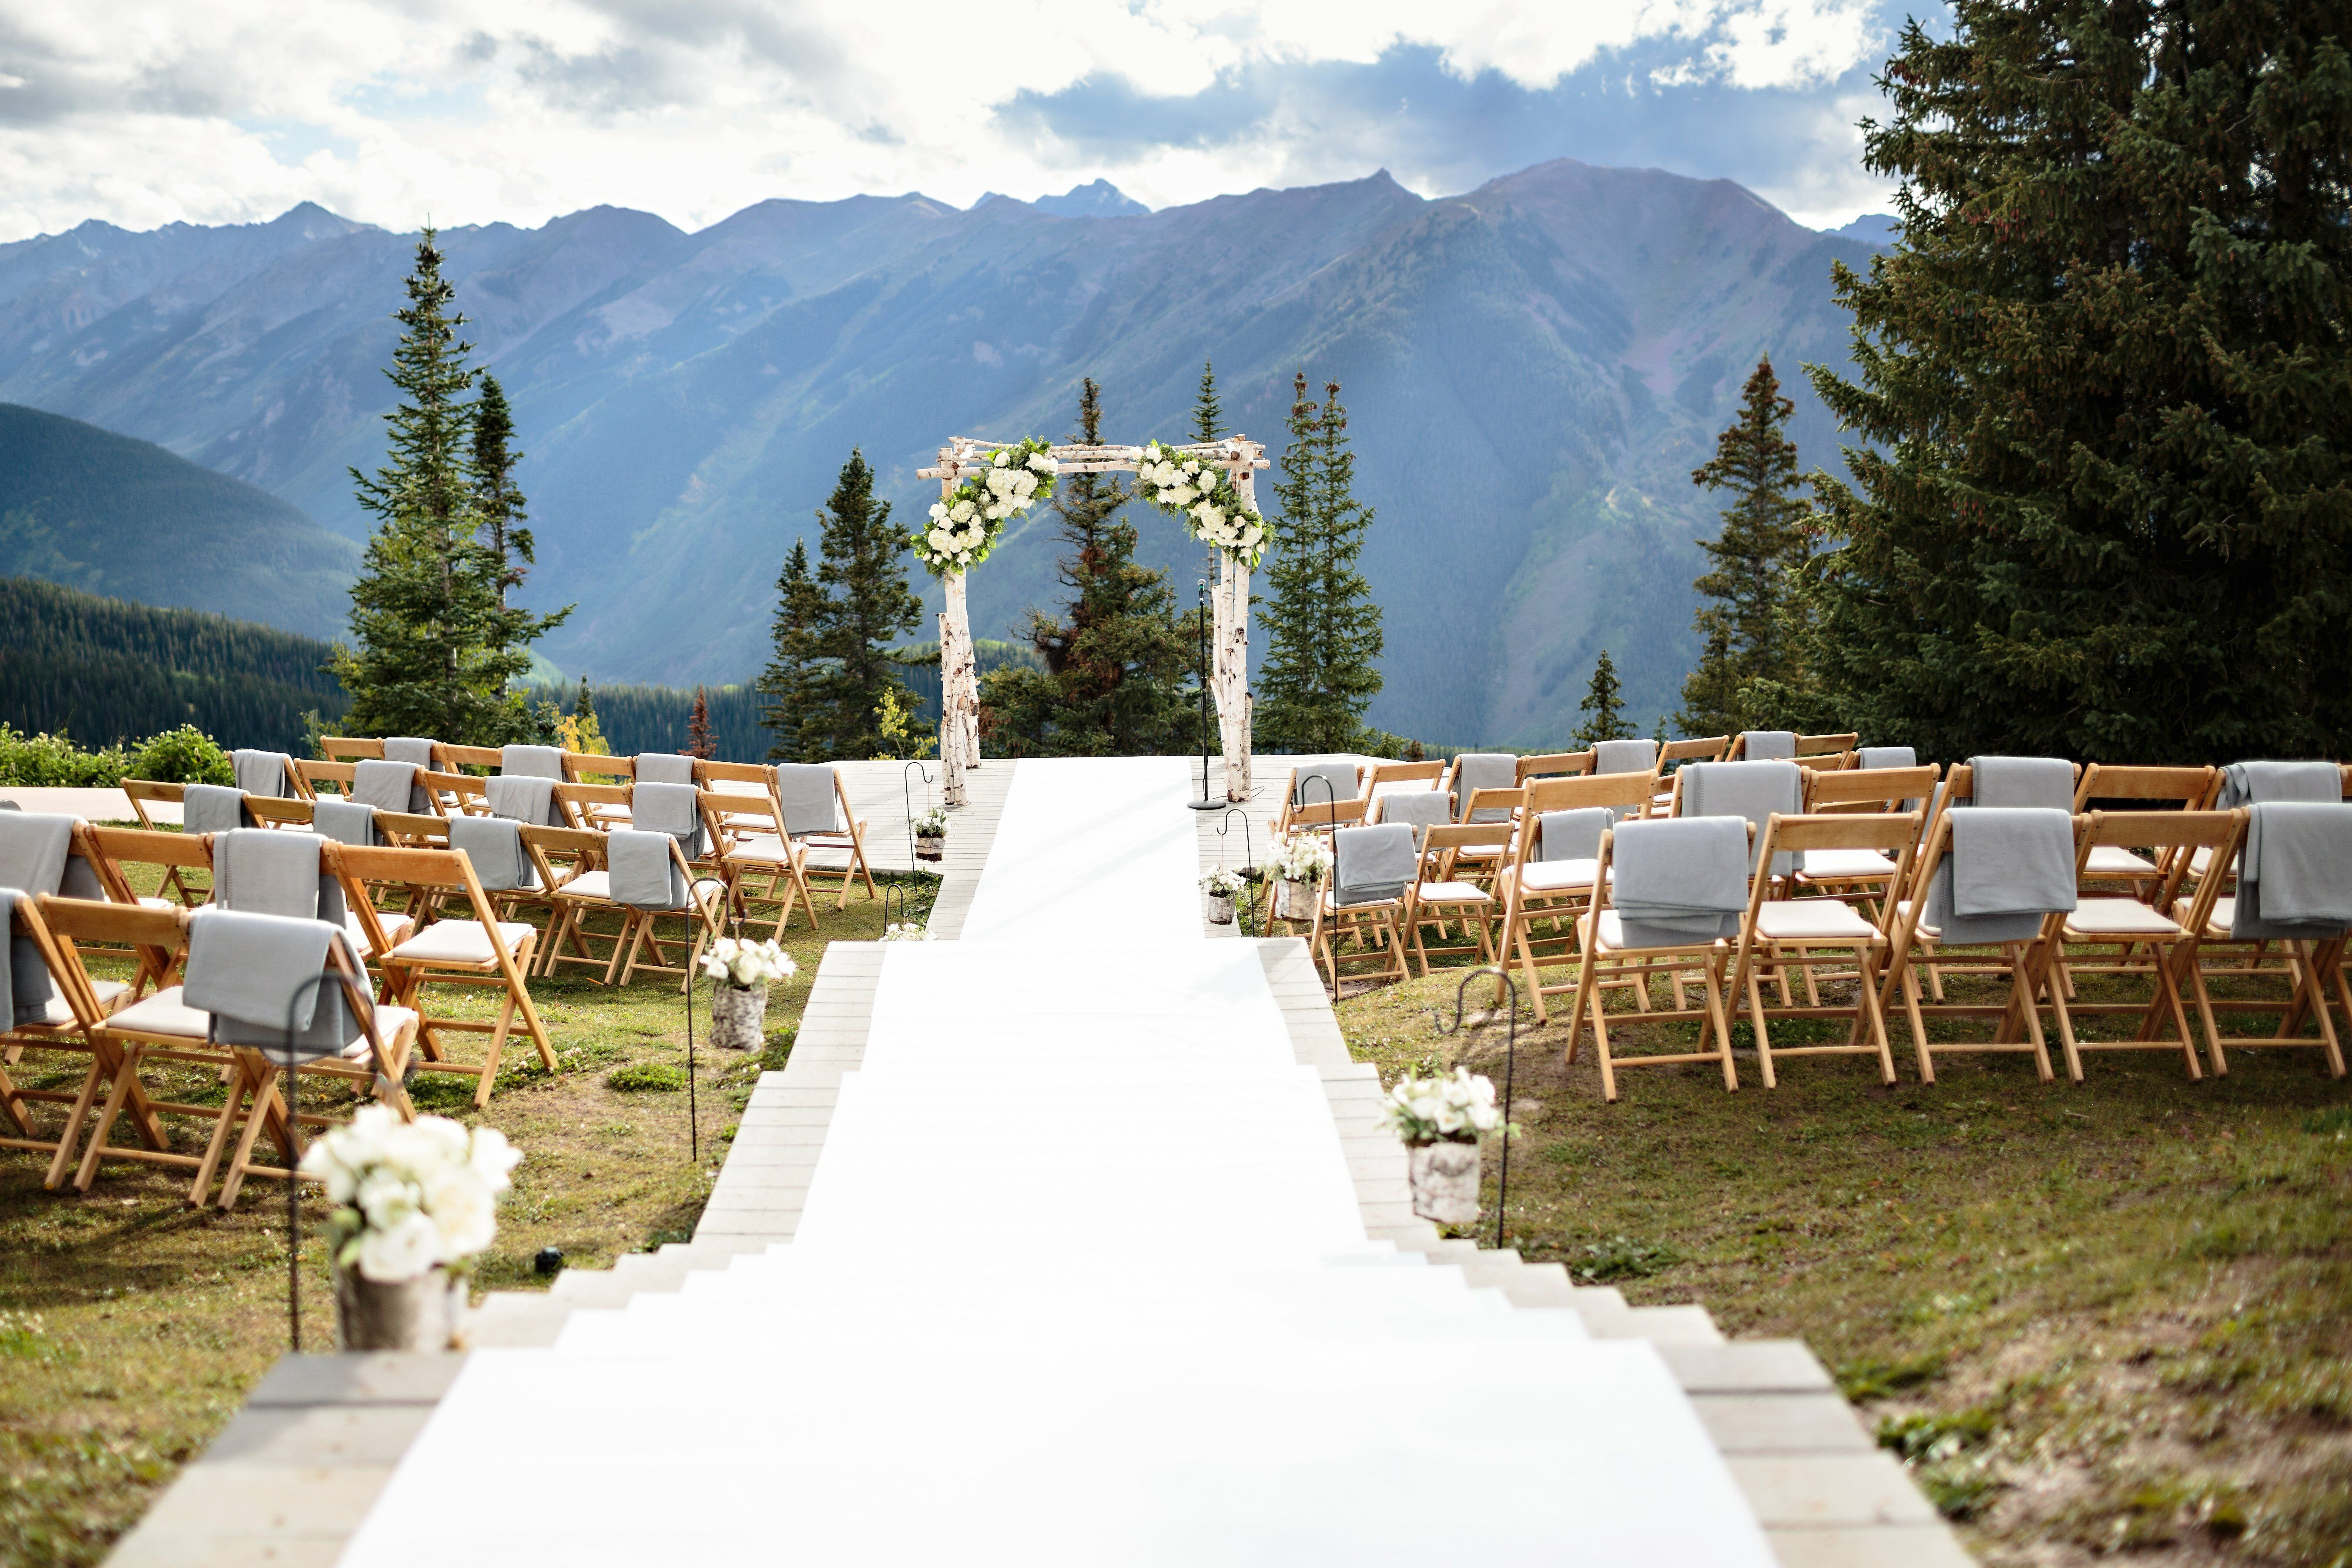 Mountain Wedding Venues: Mountaintop Ceremony